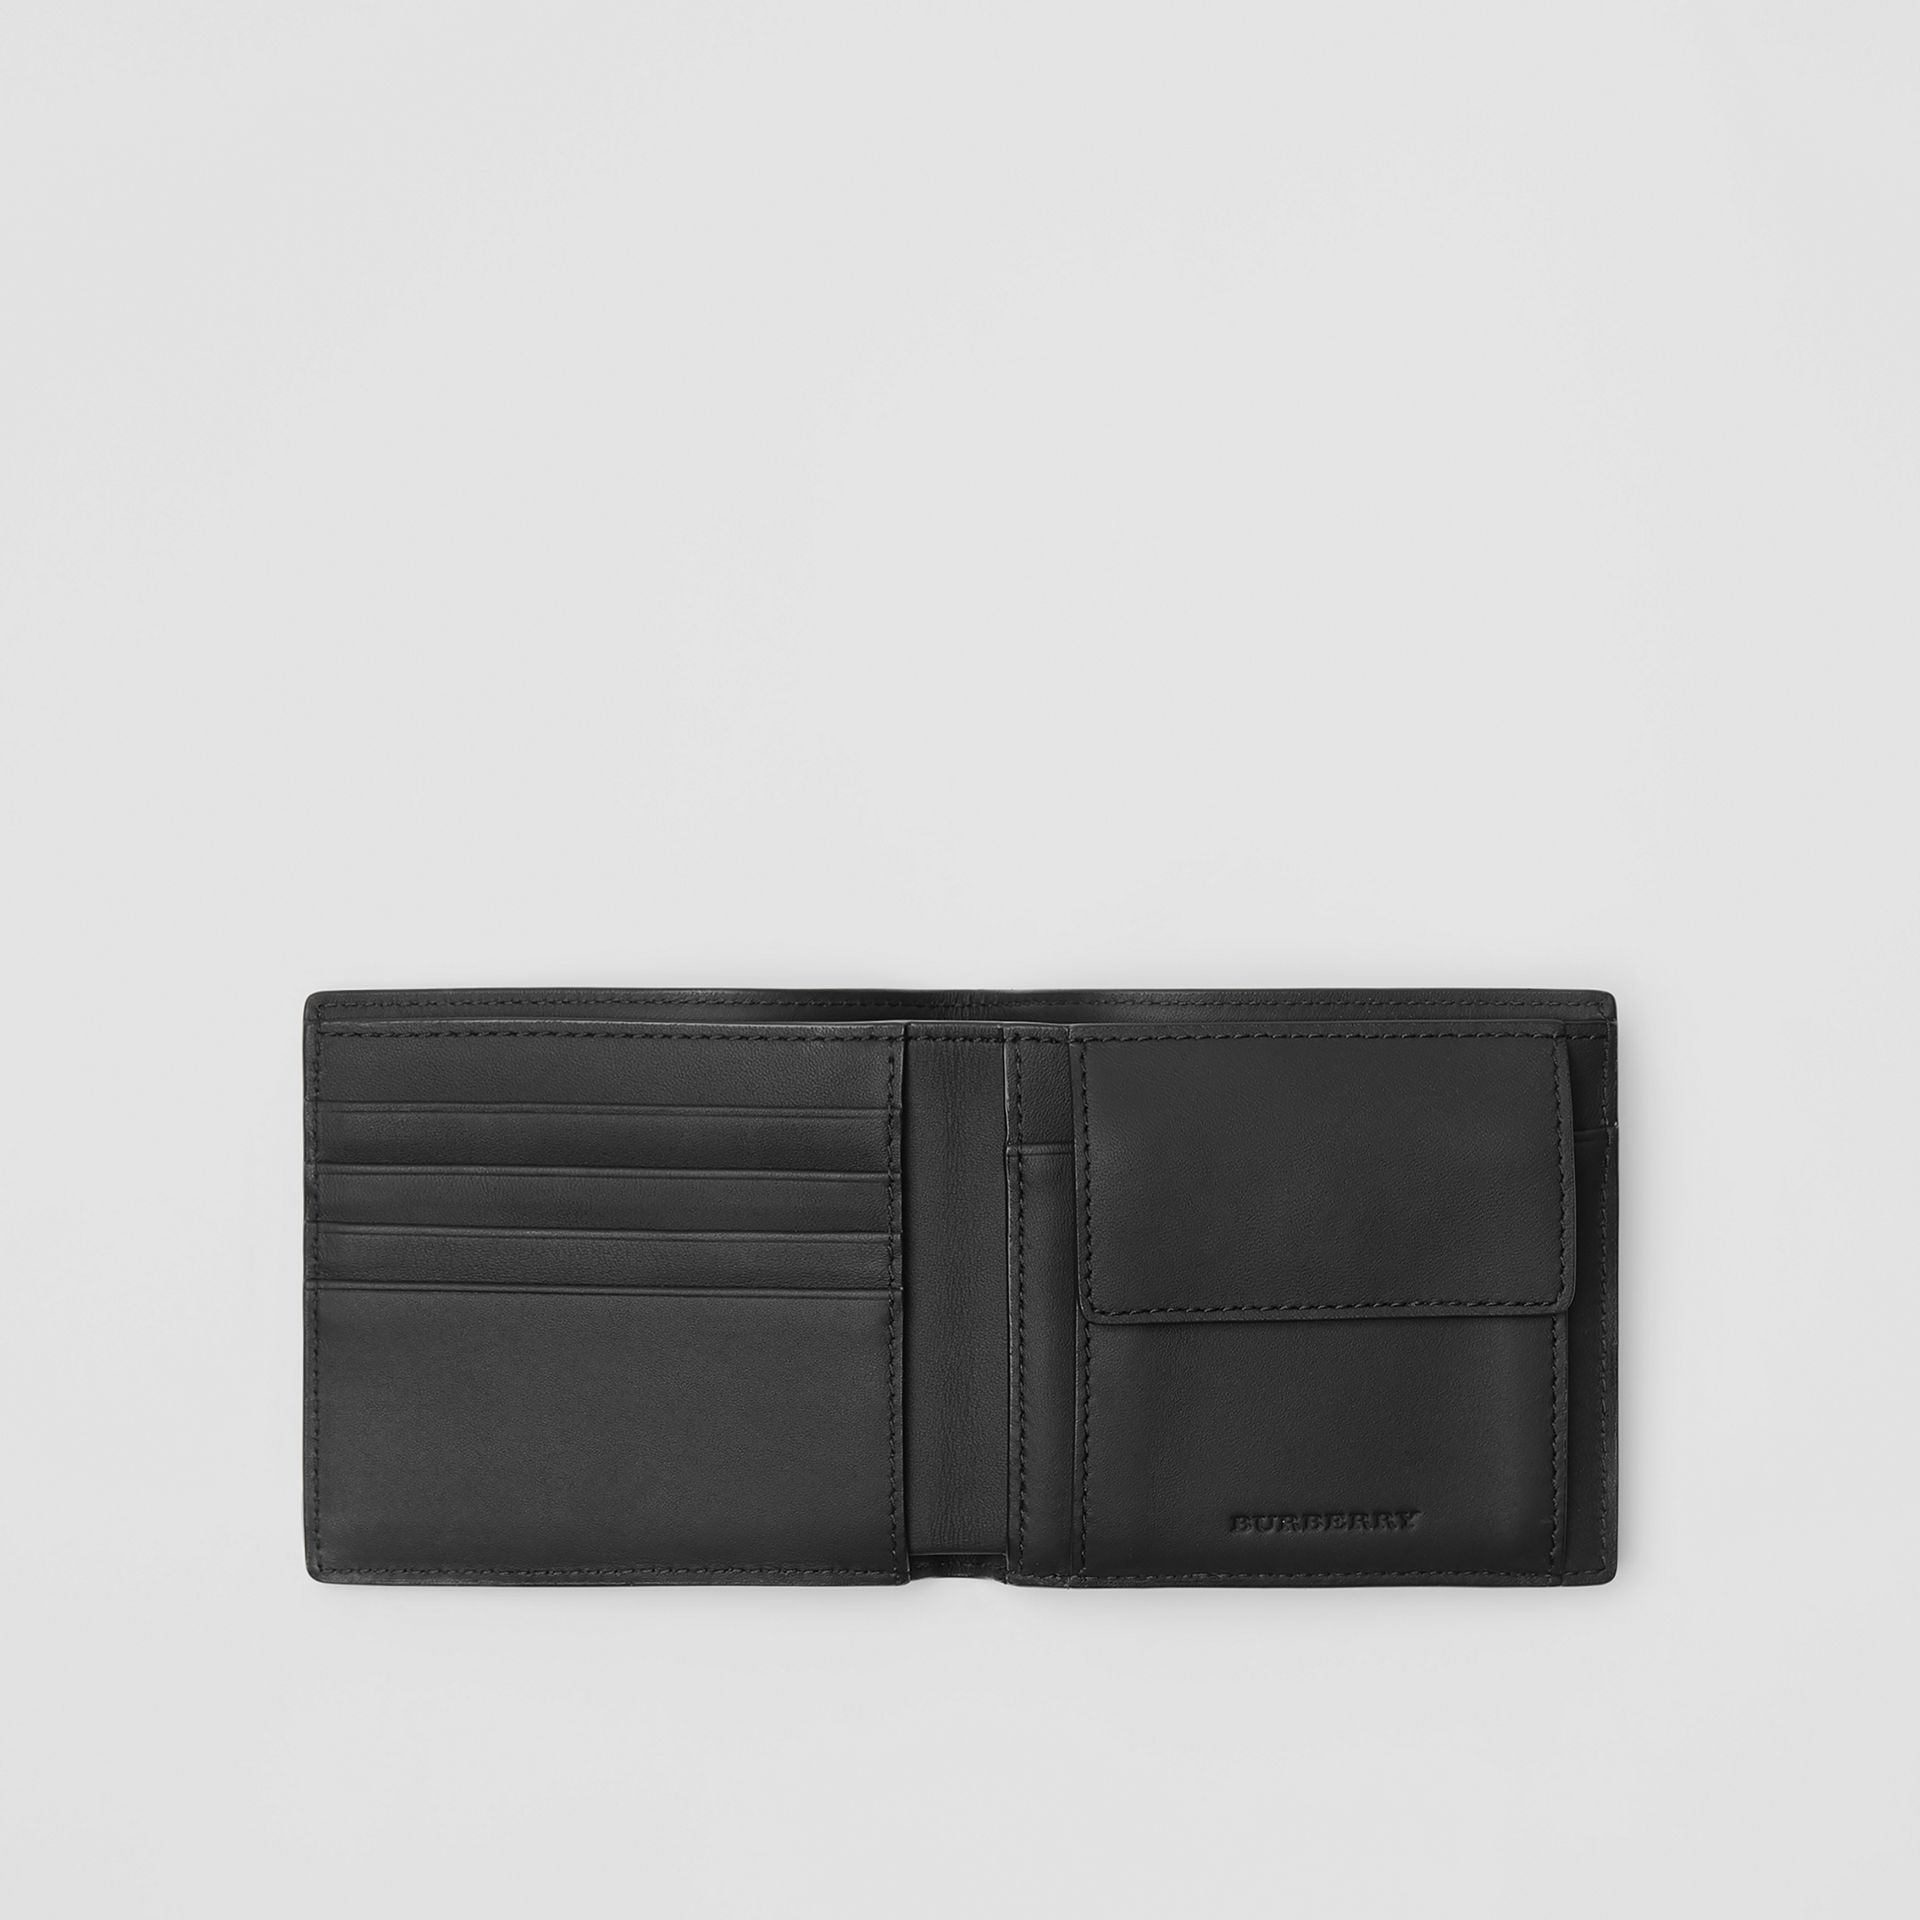 London Check International Bifold Coin Wallet in Charcoal/black - Men | Burberry Singapore - gallery image 2